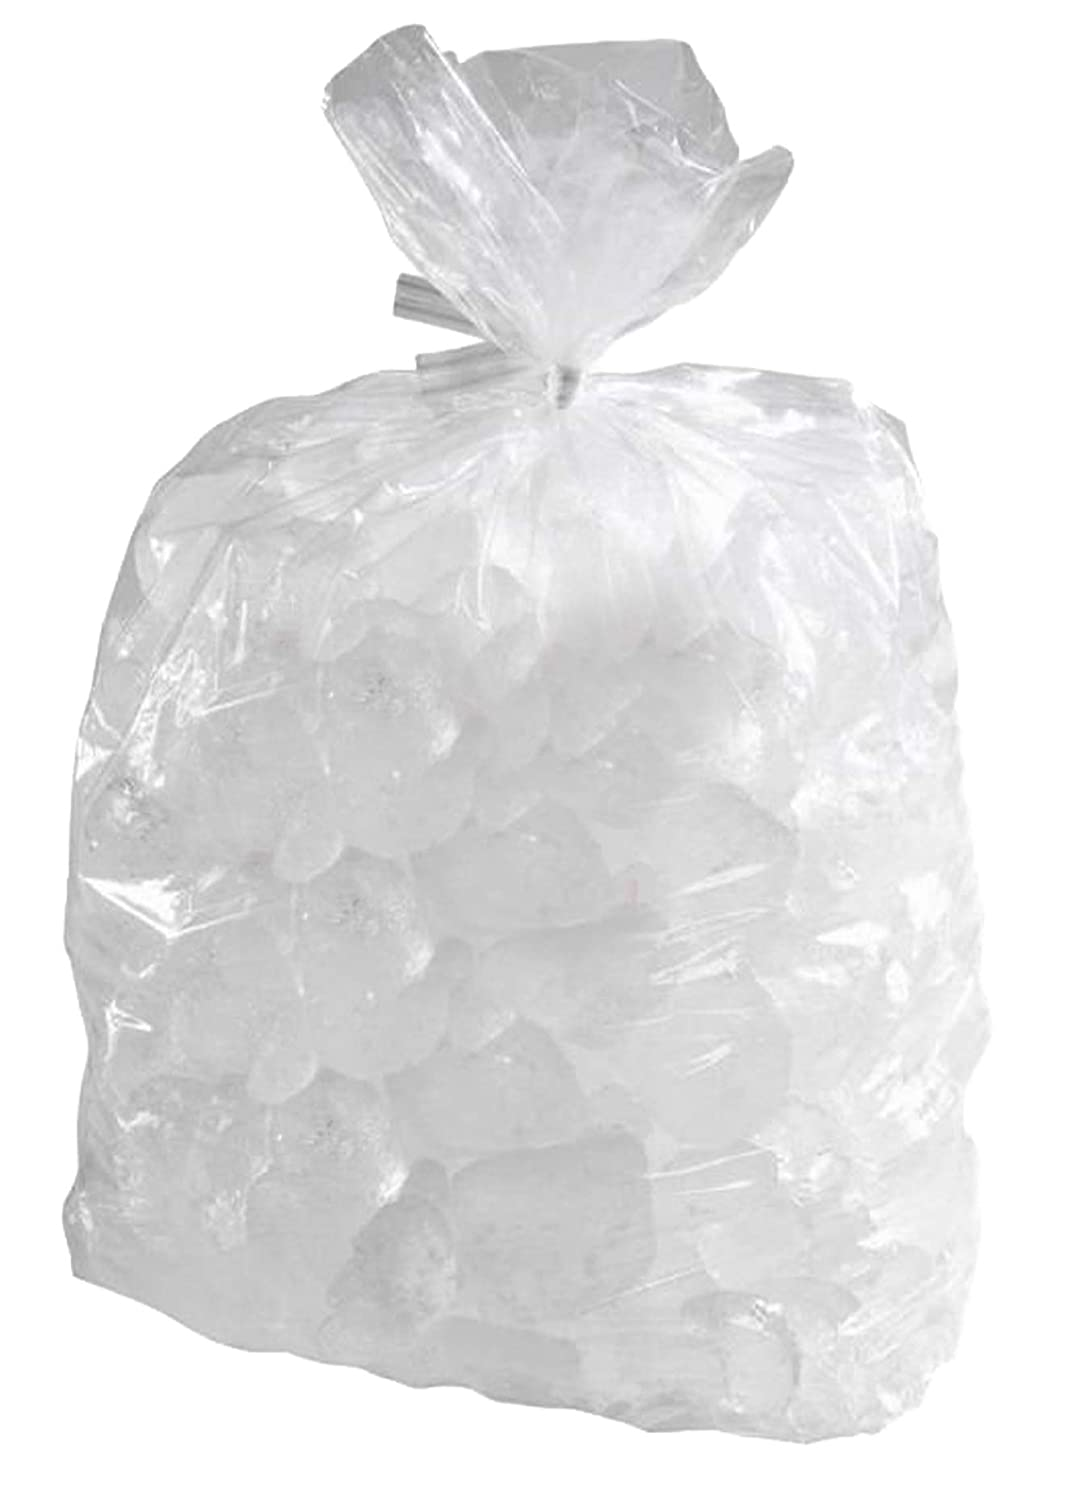 APQ Pack of 1000 Clear Ice Bucket Liners 6 x 6 x 12. Food Grade Plastic Ice Bags 6x6x12. Thickness 1 mil. Transparent Polyethylene Liners for foodservice, Restaurants, Hotels or Home.